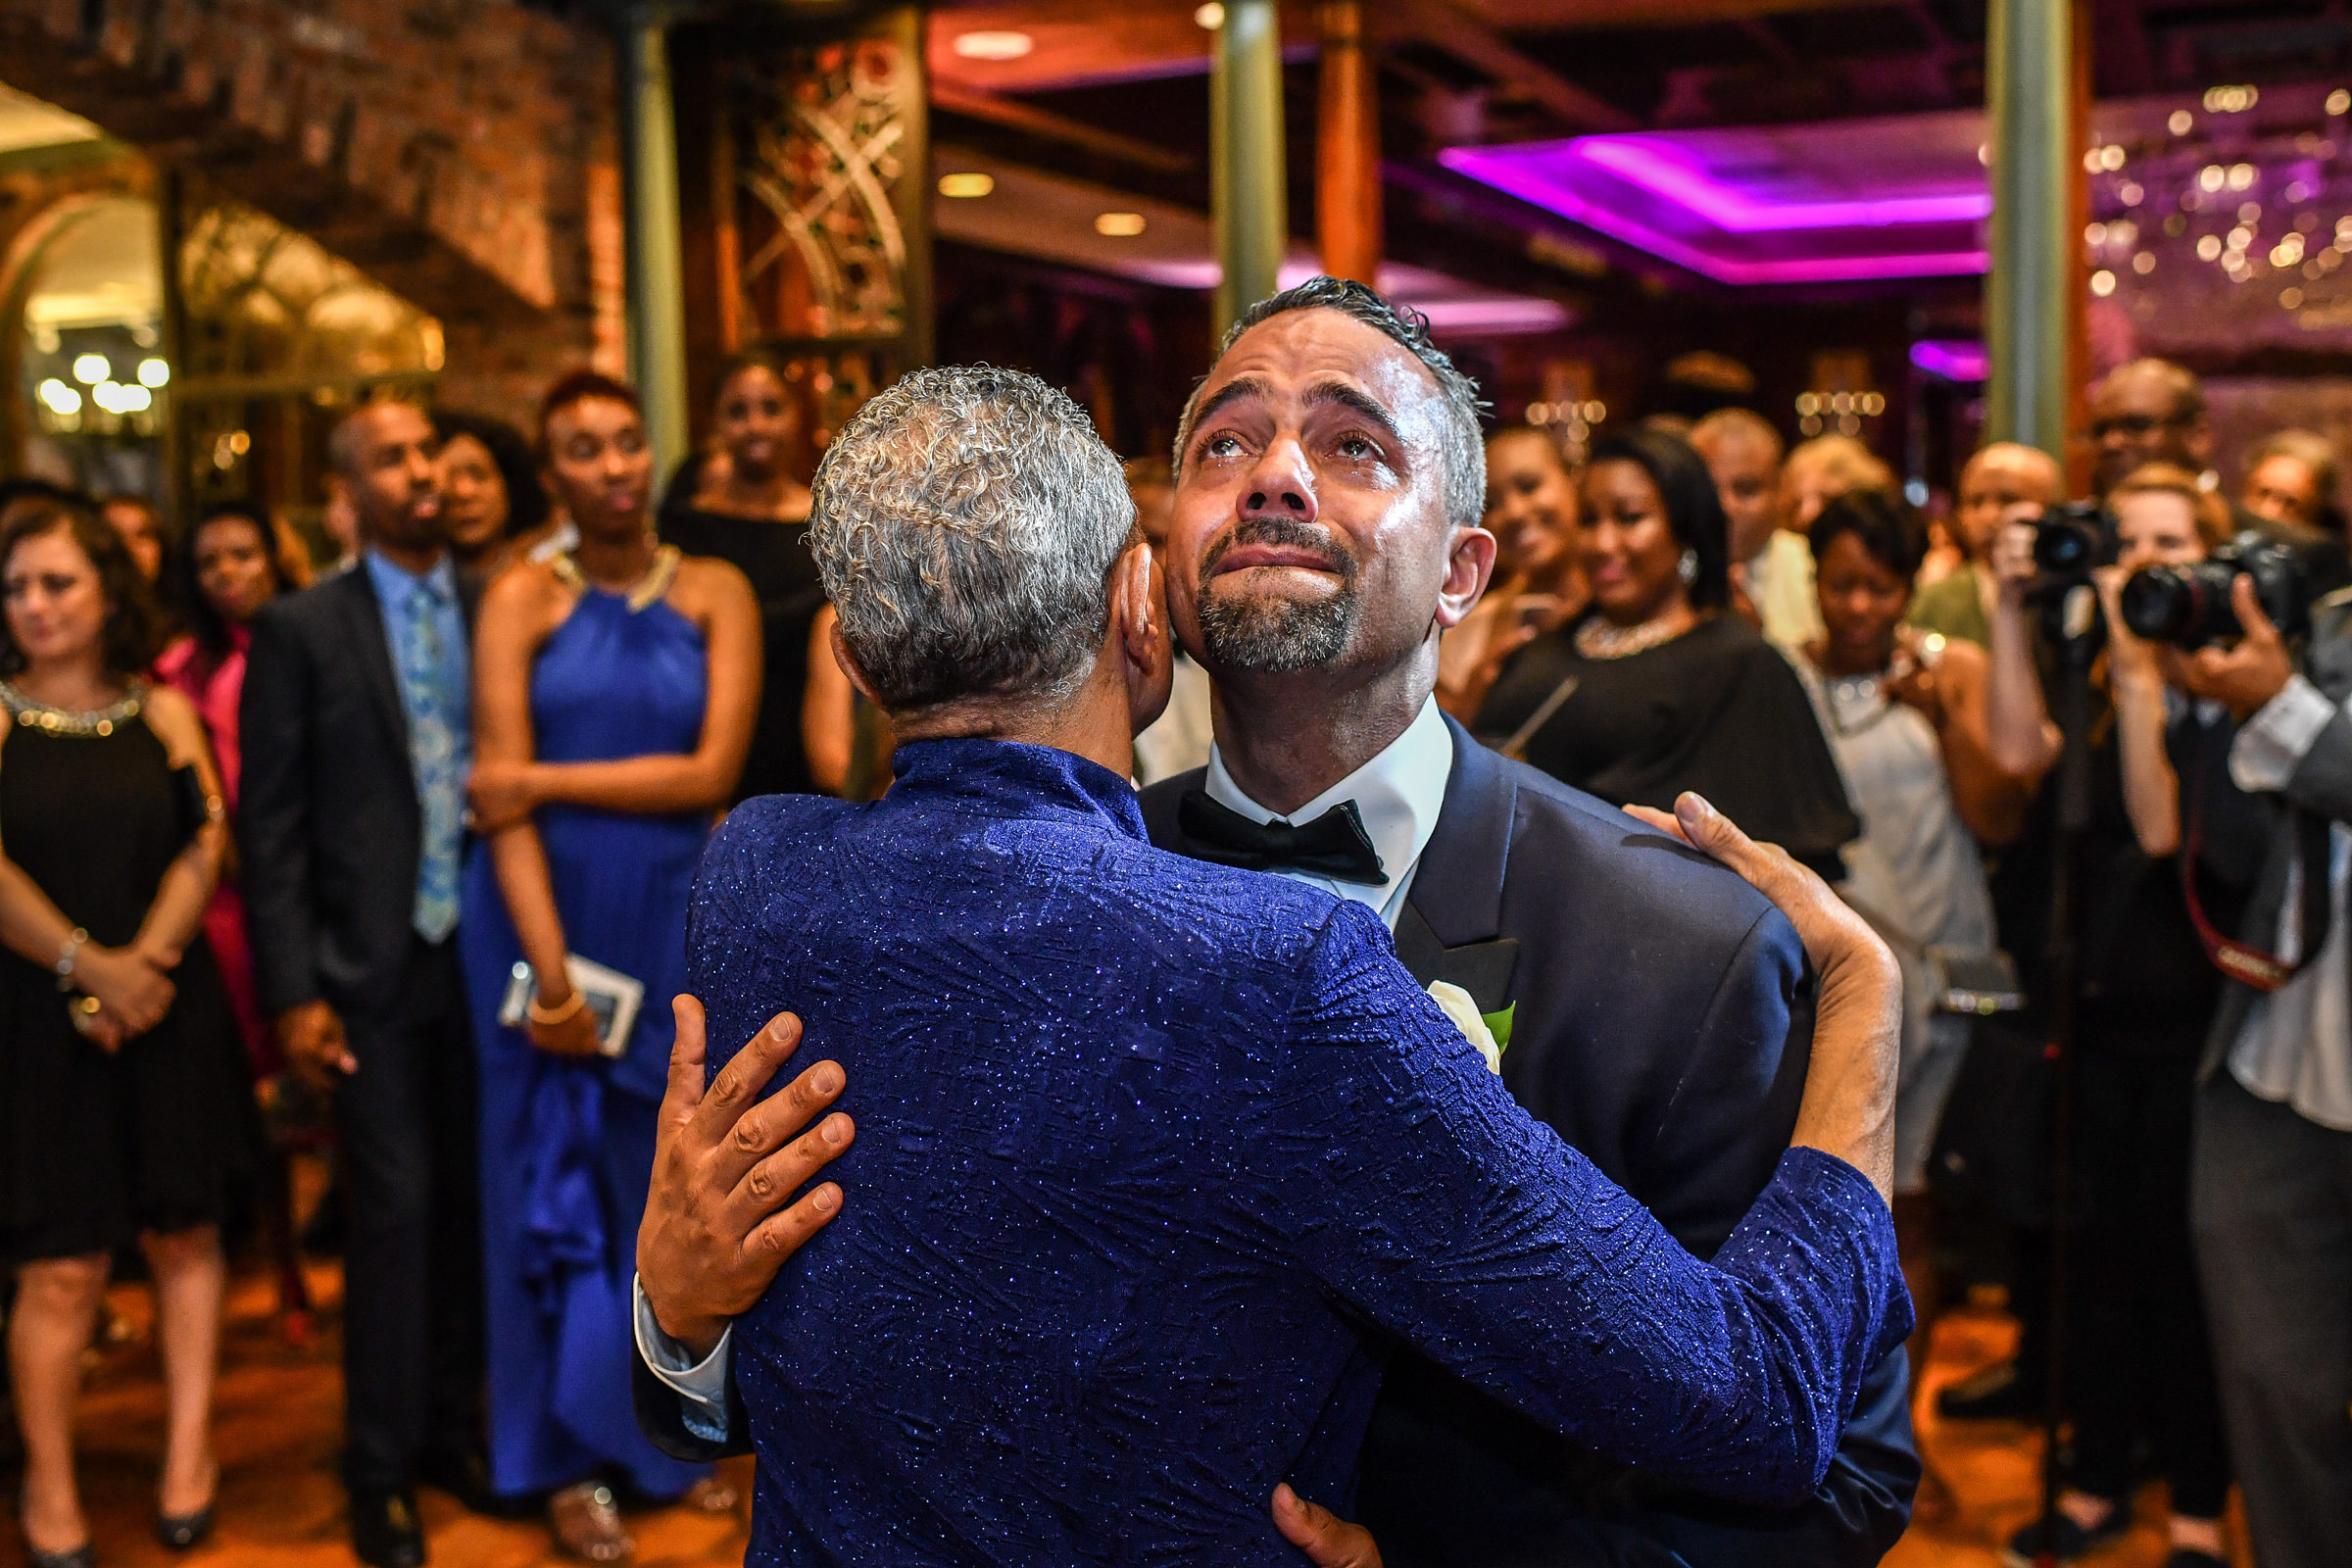 Groom cries while dancing with partner - photo by Jeff Tisman Photography, New York